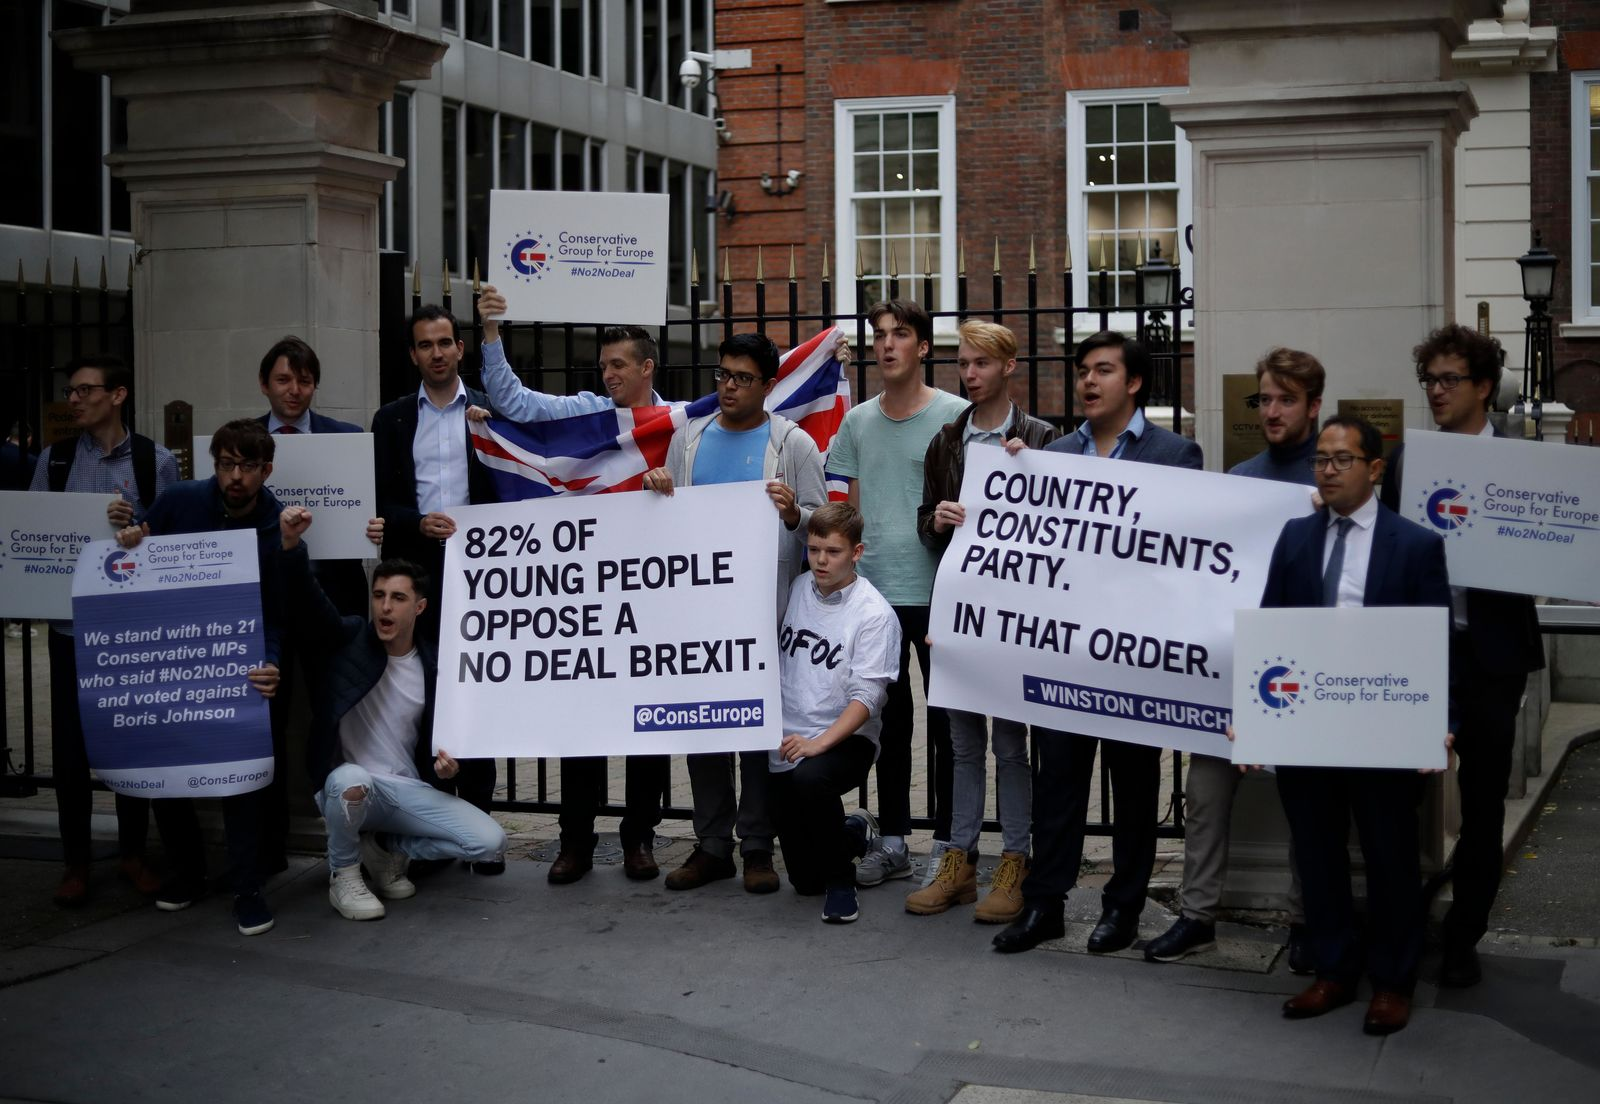 Young Conservative party members hold signs as they demonstrate outside Conservative Party Campaign Headquarters in London, Wednesday, Sept. 4, 2019. (AP Photo/Matt Dunham)